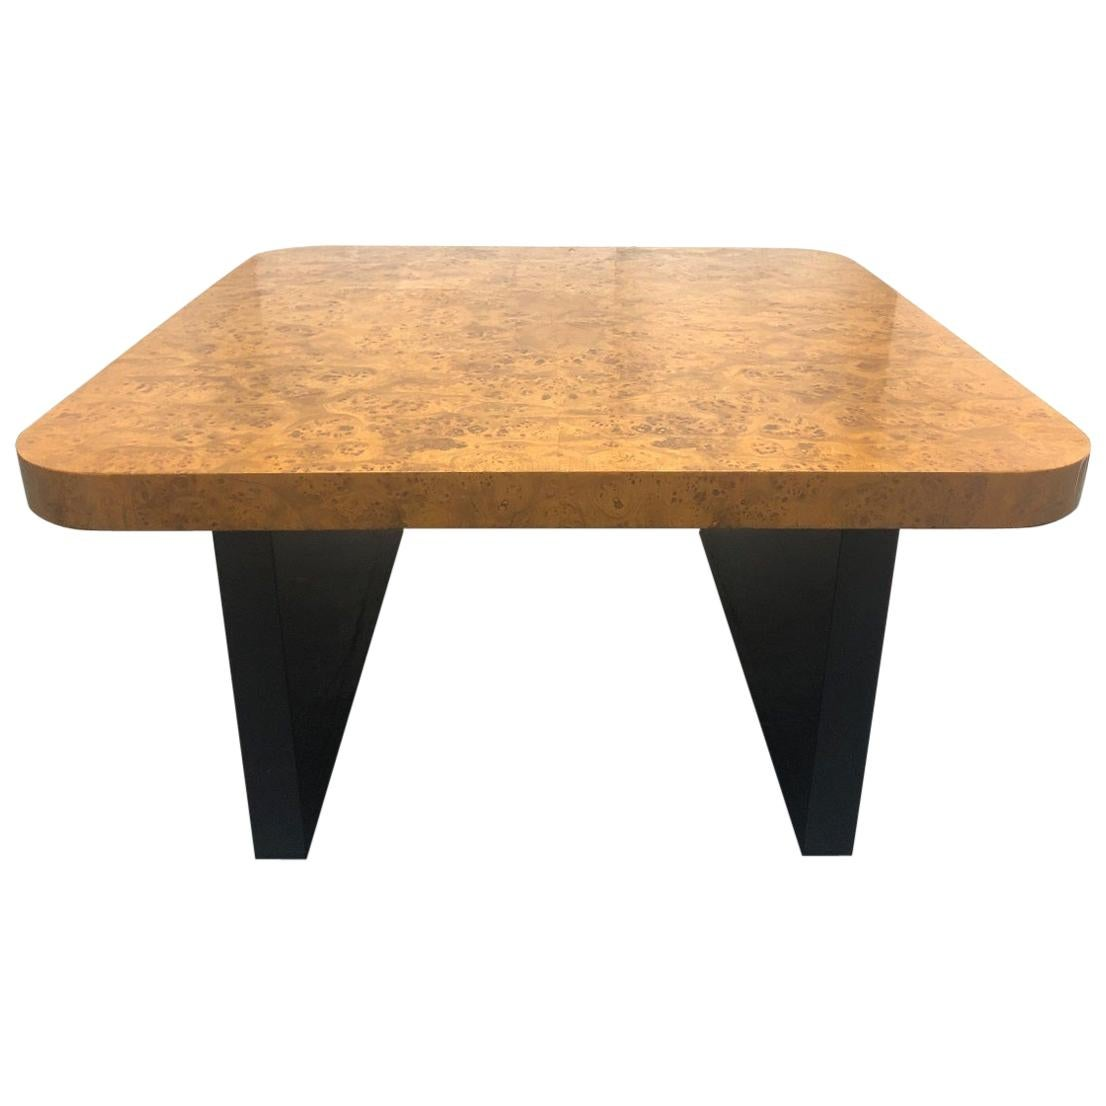 Burl Coffee Table with Lacquered Base